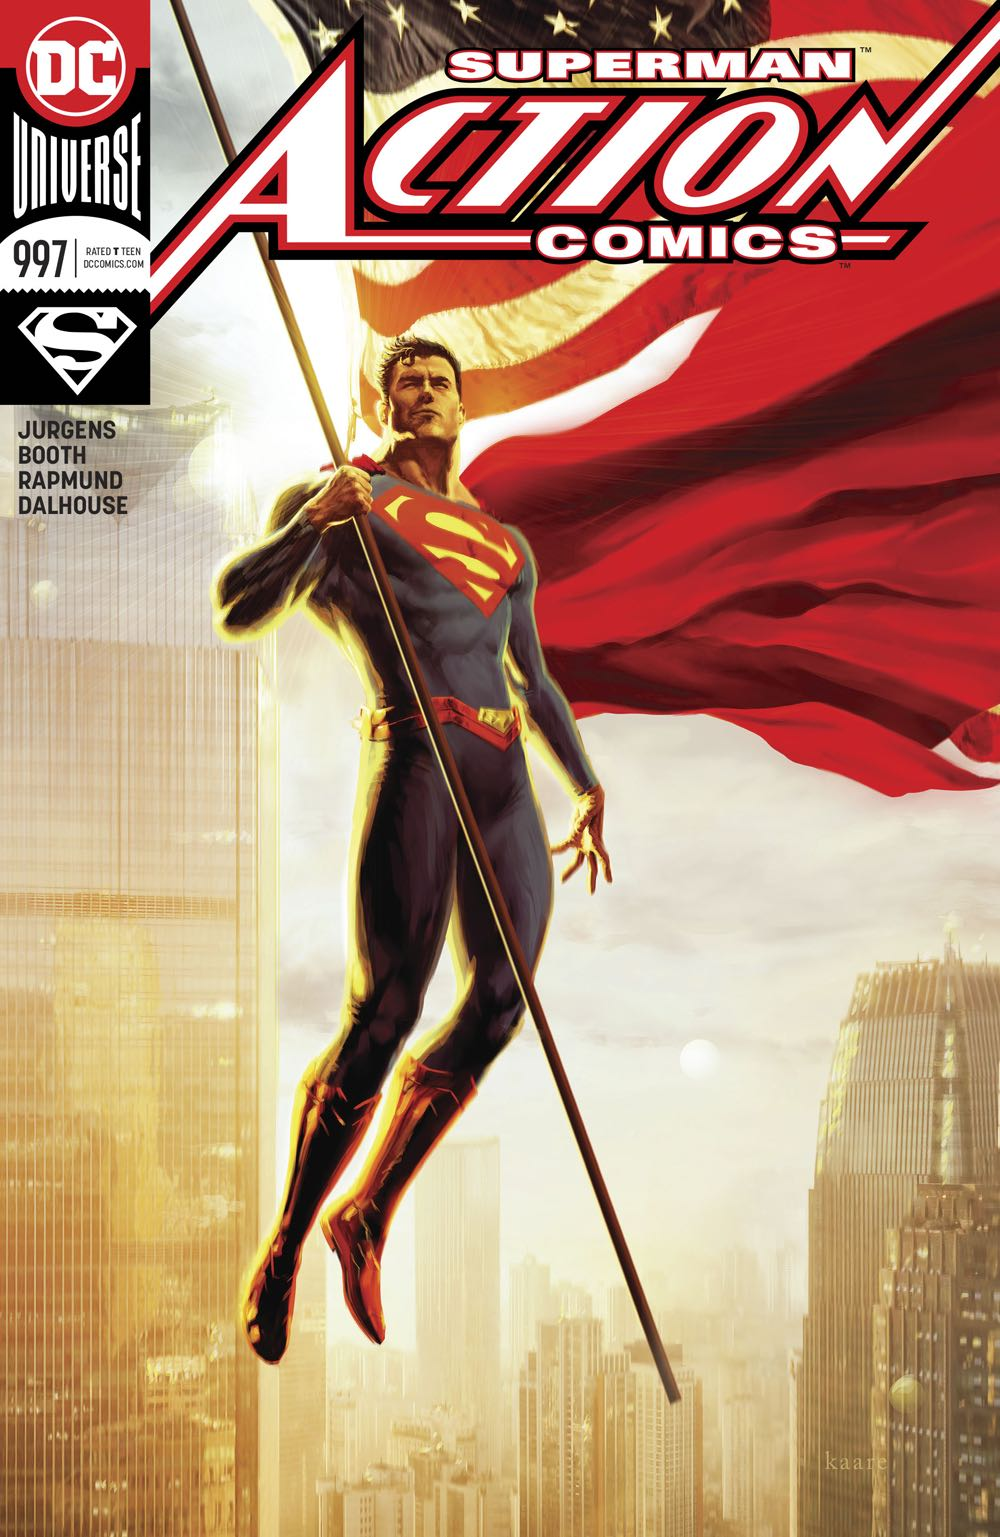 Episode 23 Variant of the Week! - (DC) Action Comics #997 (variant)Cover by Kaare AndrewsWritten by Dan JurgensIllustrated by Will ConradDid the Content Match the Drapes? - UNR